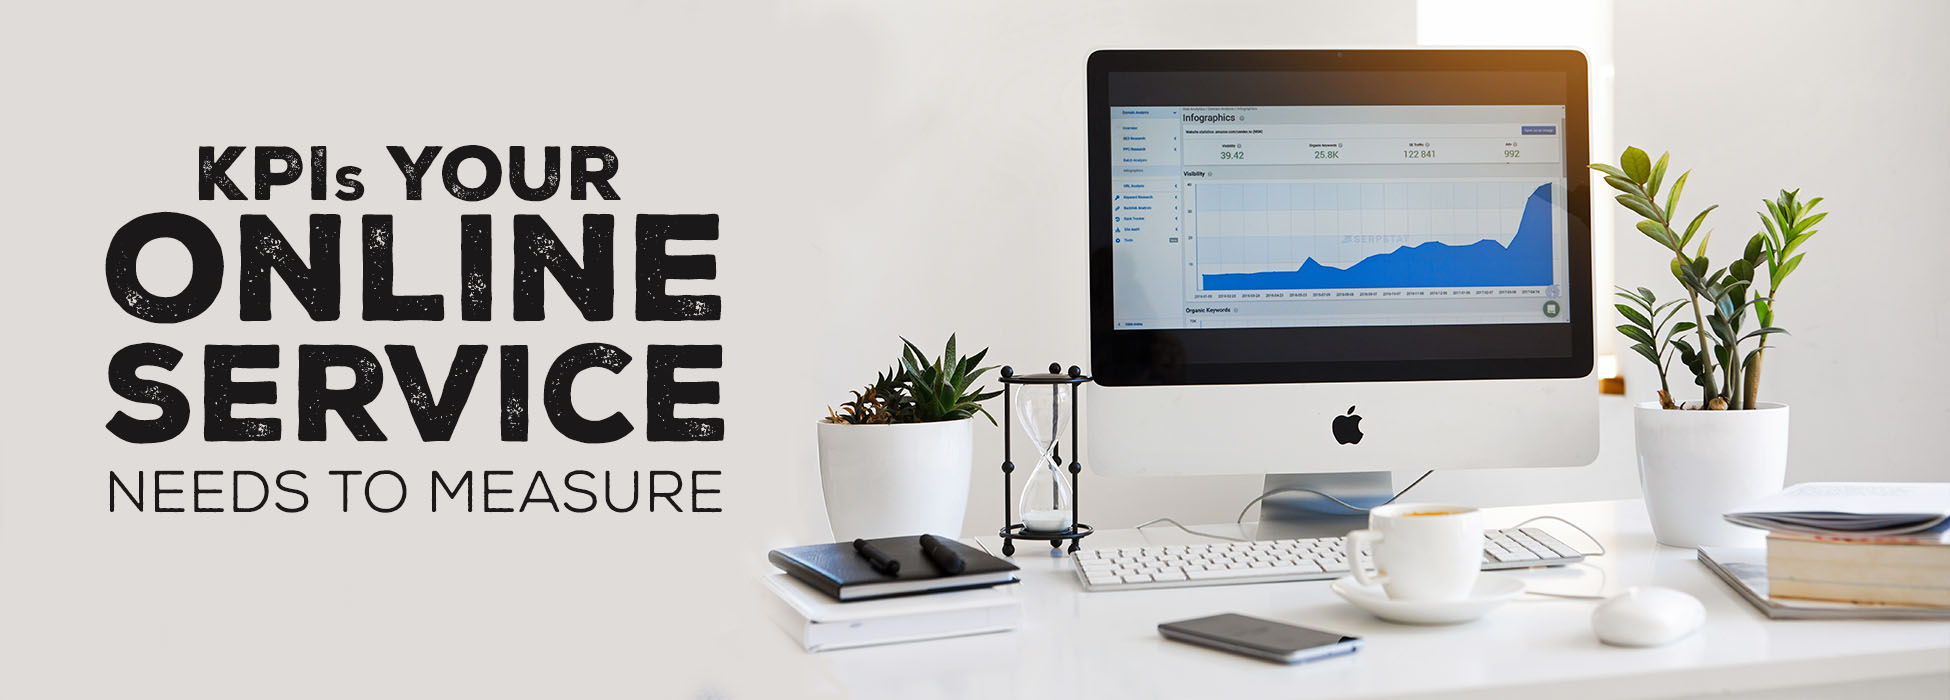 KPIs your online service needs to measure